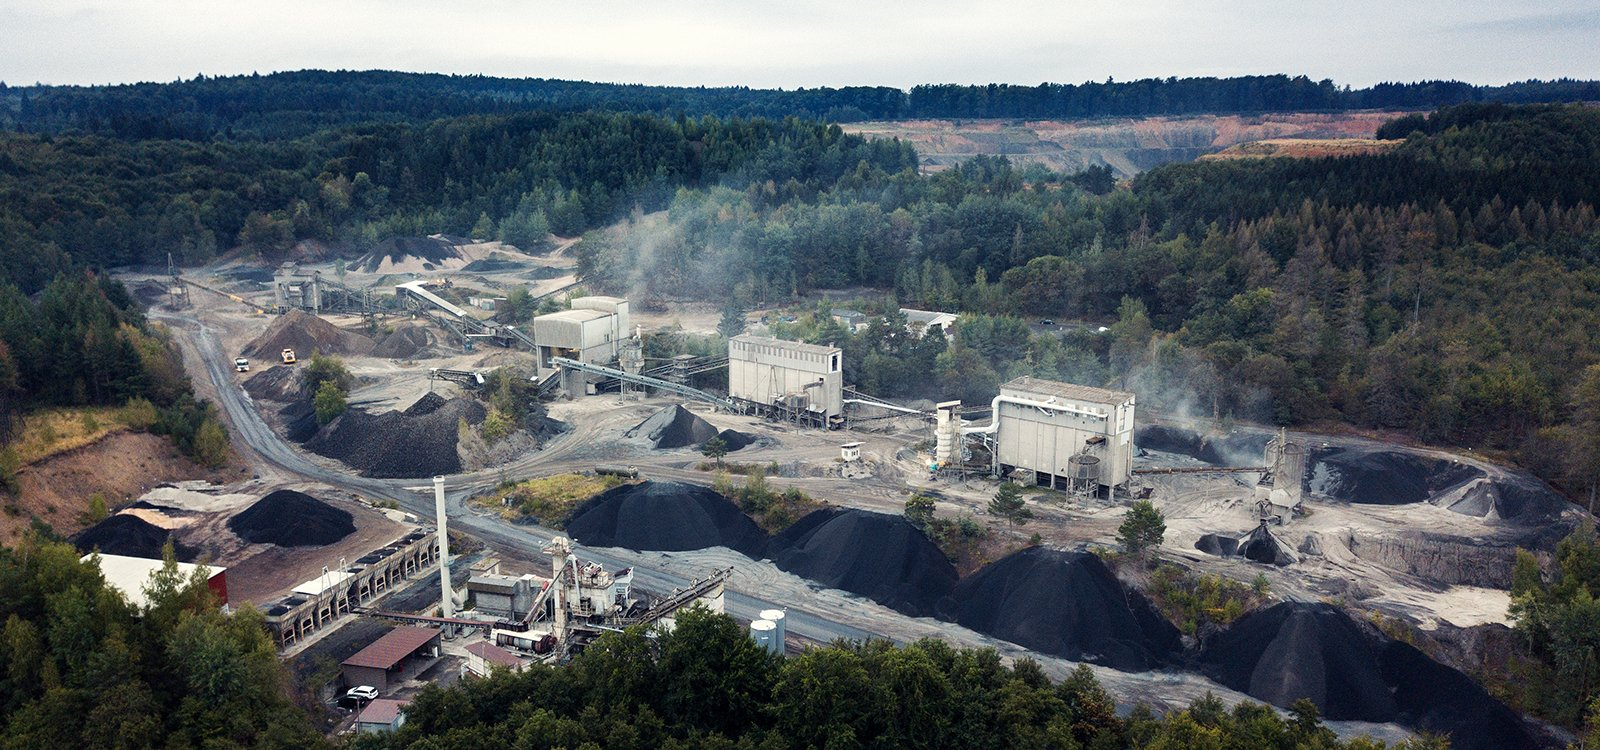 <p>Vogelsberger Basaltwerk in south-western Germany produces gravel, stone, sand and other raw materials primarily used as aggregate for asphalt and concrete.</p>